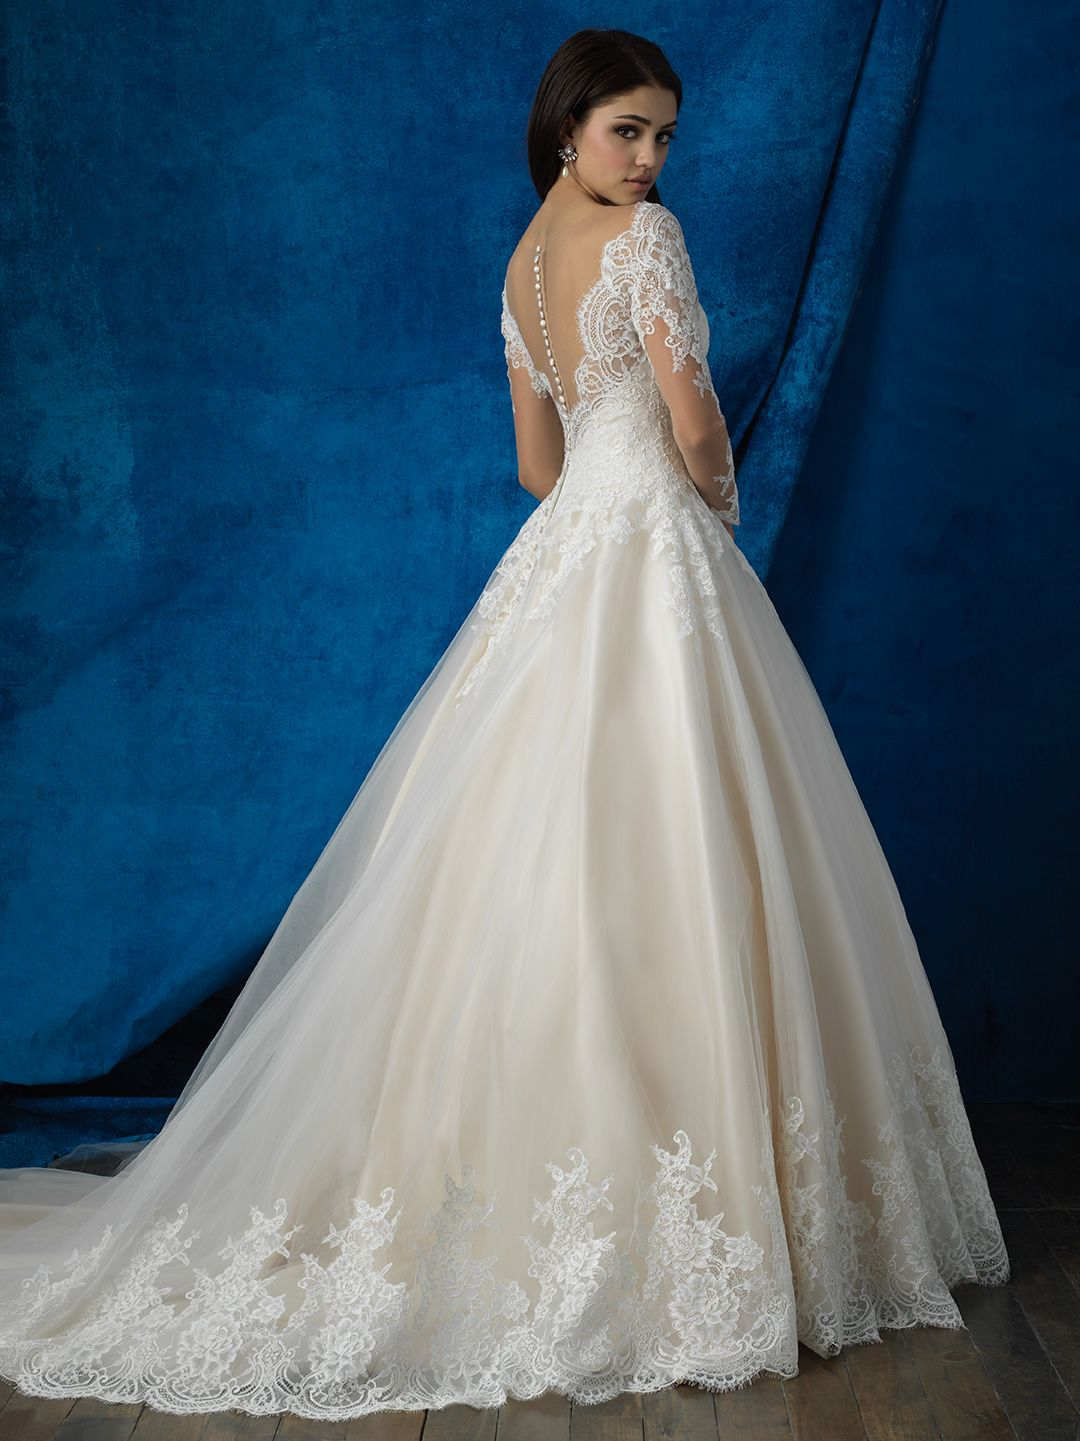 Allure bridals style 9366 back view fall 2016 wedding gowns find this pin and more on fall 2016 wedding gowns by danellibridal ombrellifo Gallery